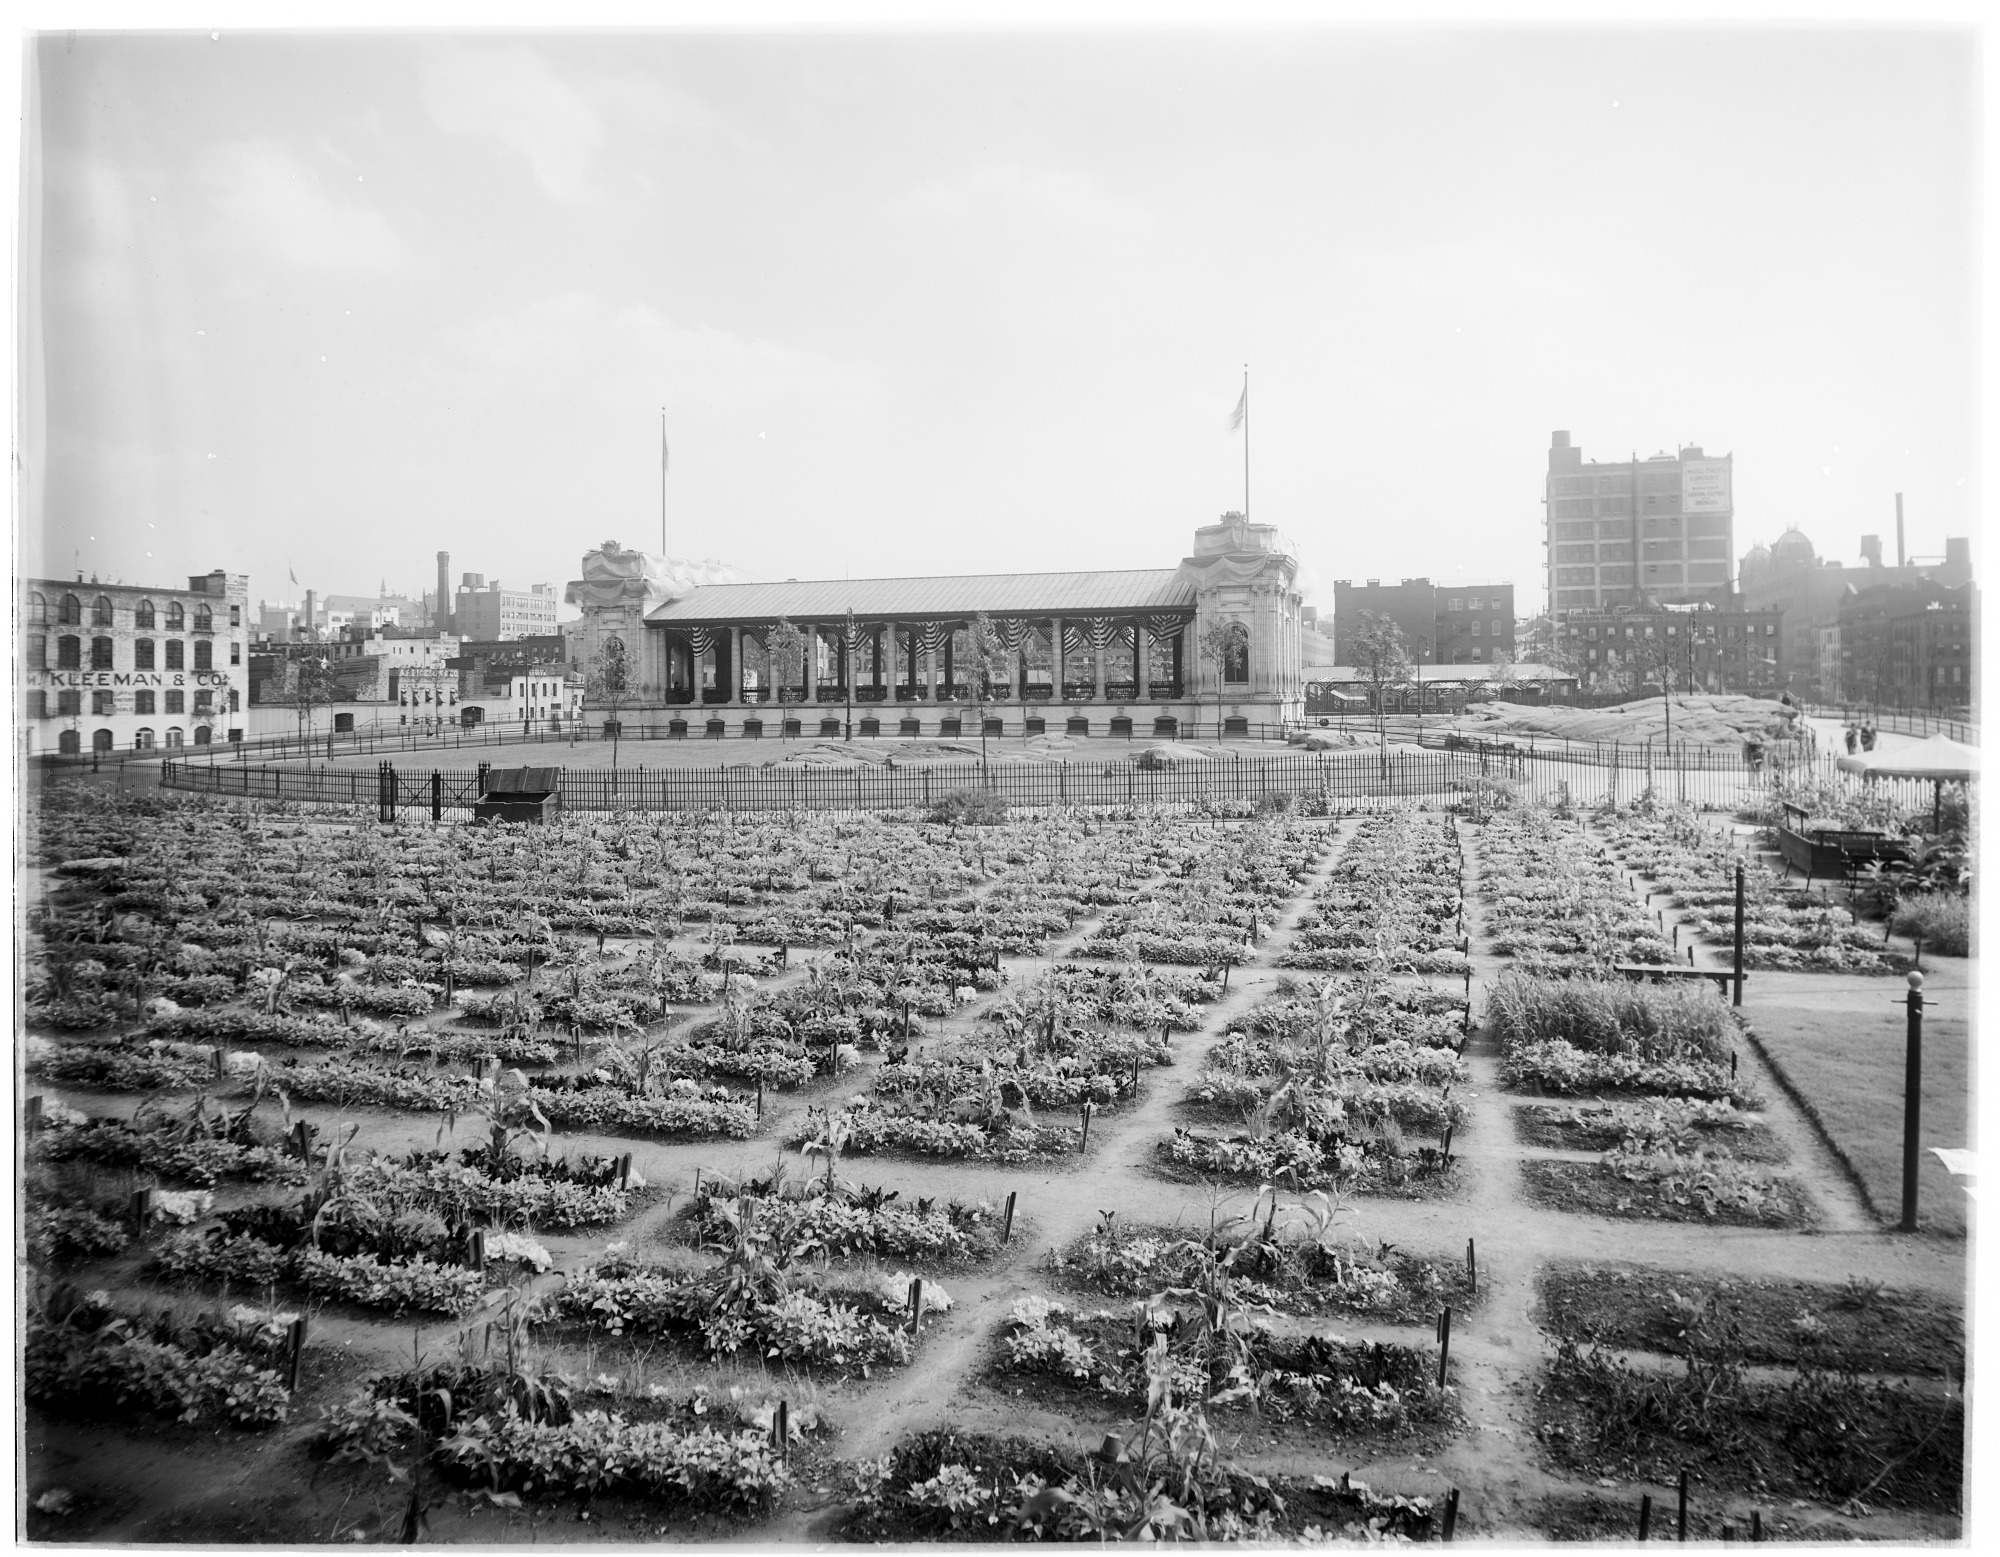 Children's garden plots, DeWitt Clinton Park, New York City, 1909